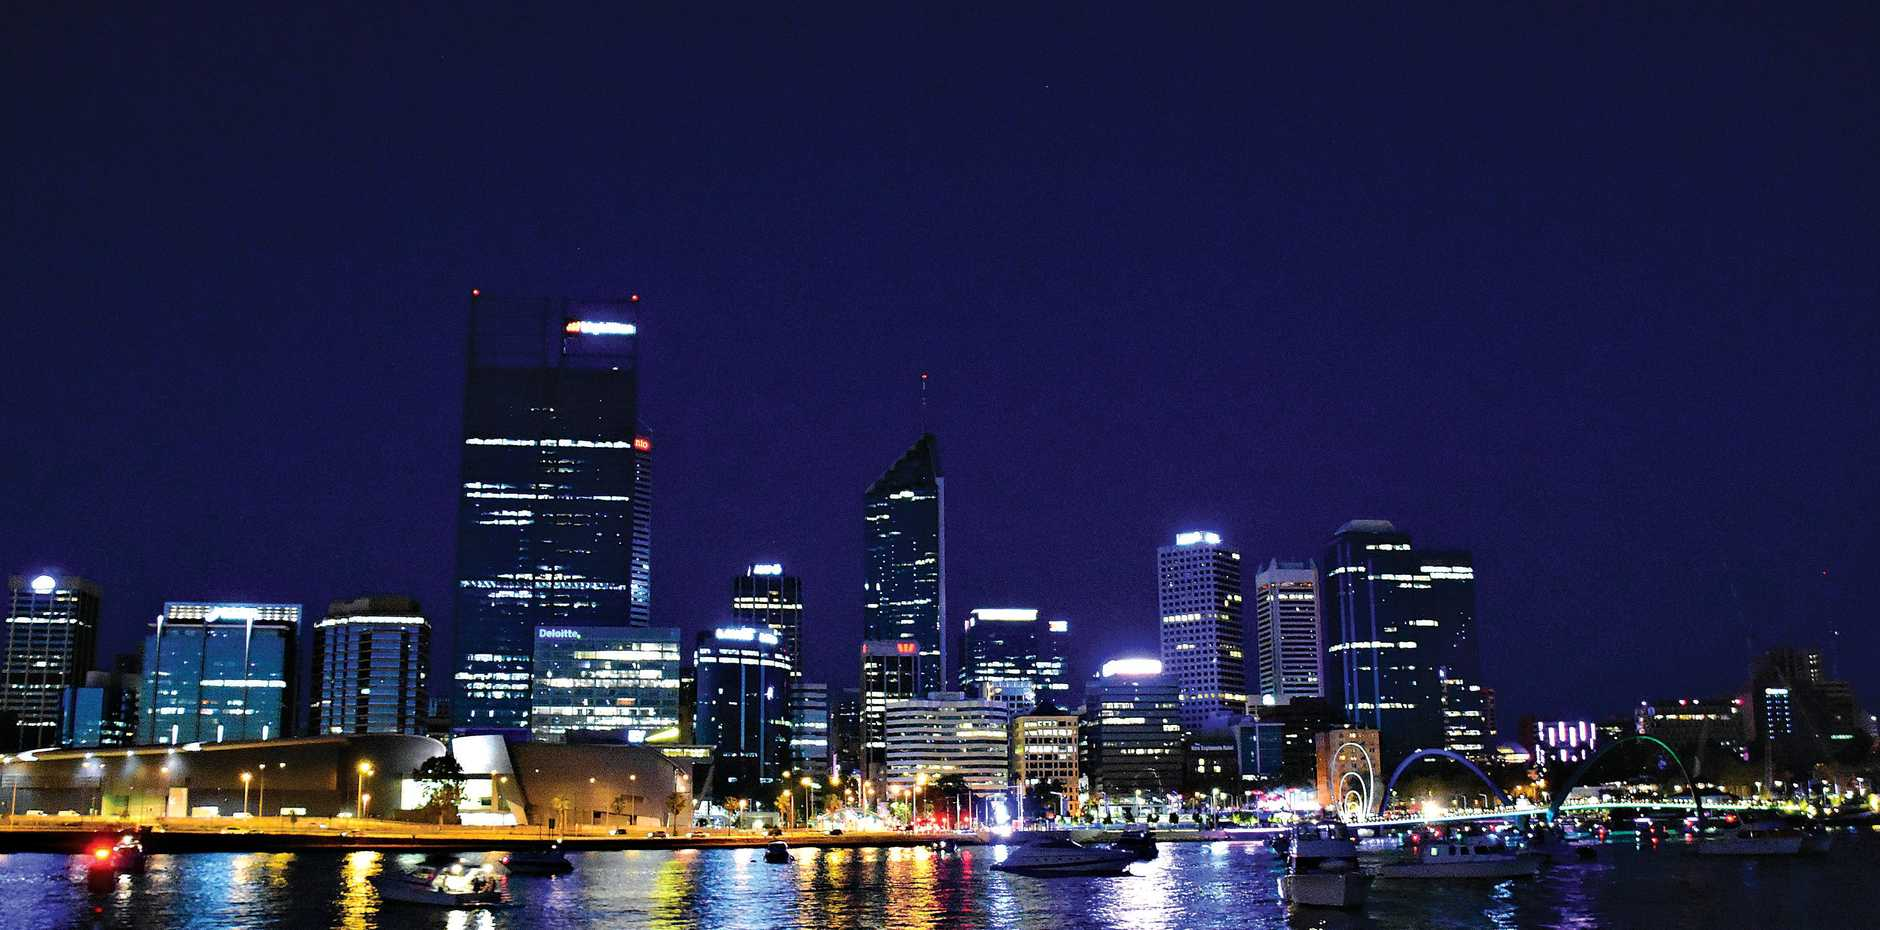 The Perth skyline by night is one of many sights to take in during a 15-day trip across Australia.